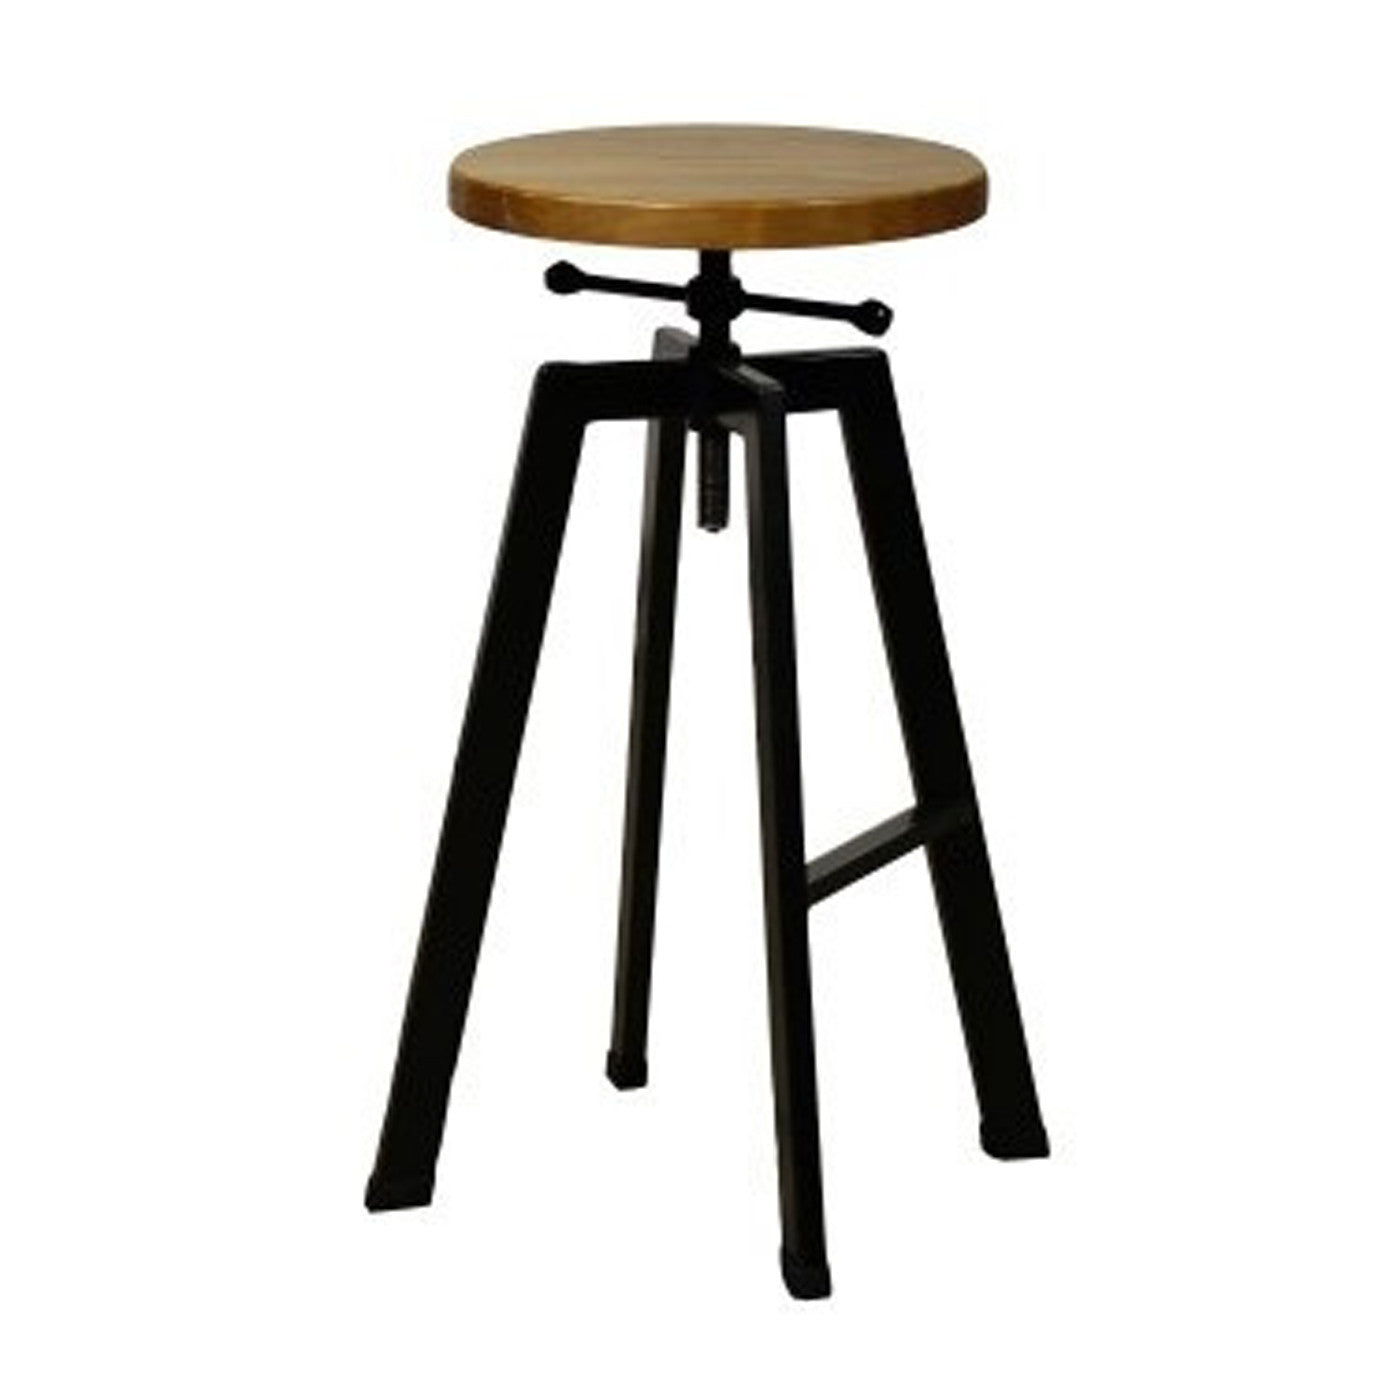 Edinburgh Bar/Counter Stool PINE/BLACK STEEL